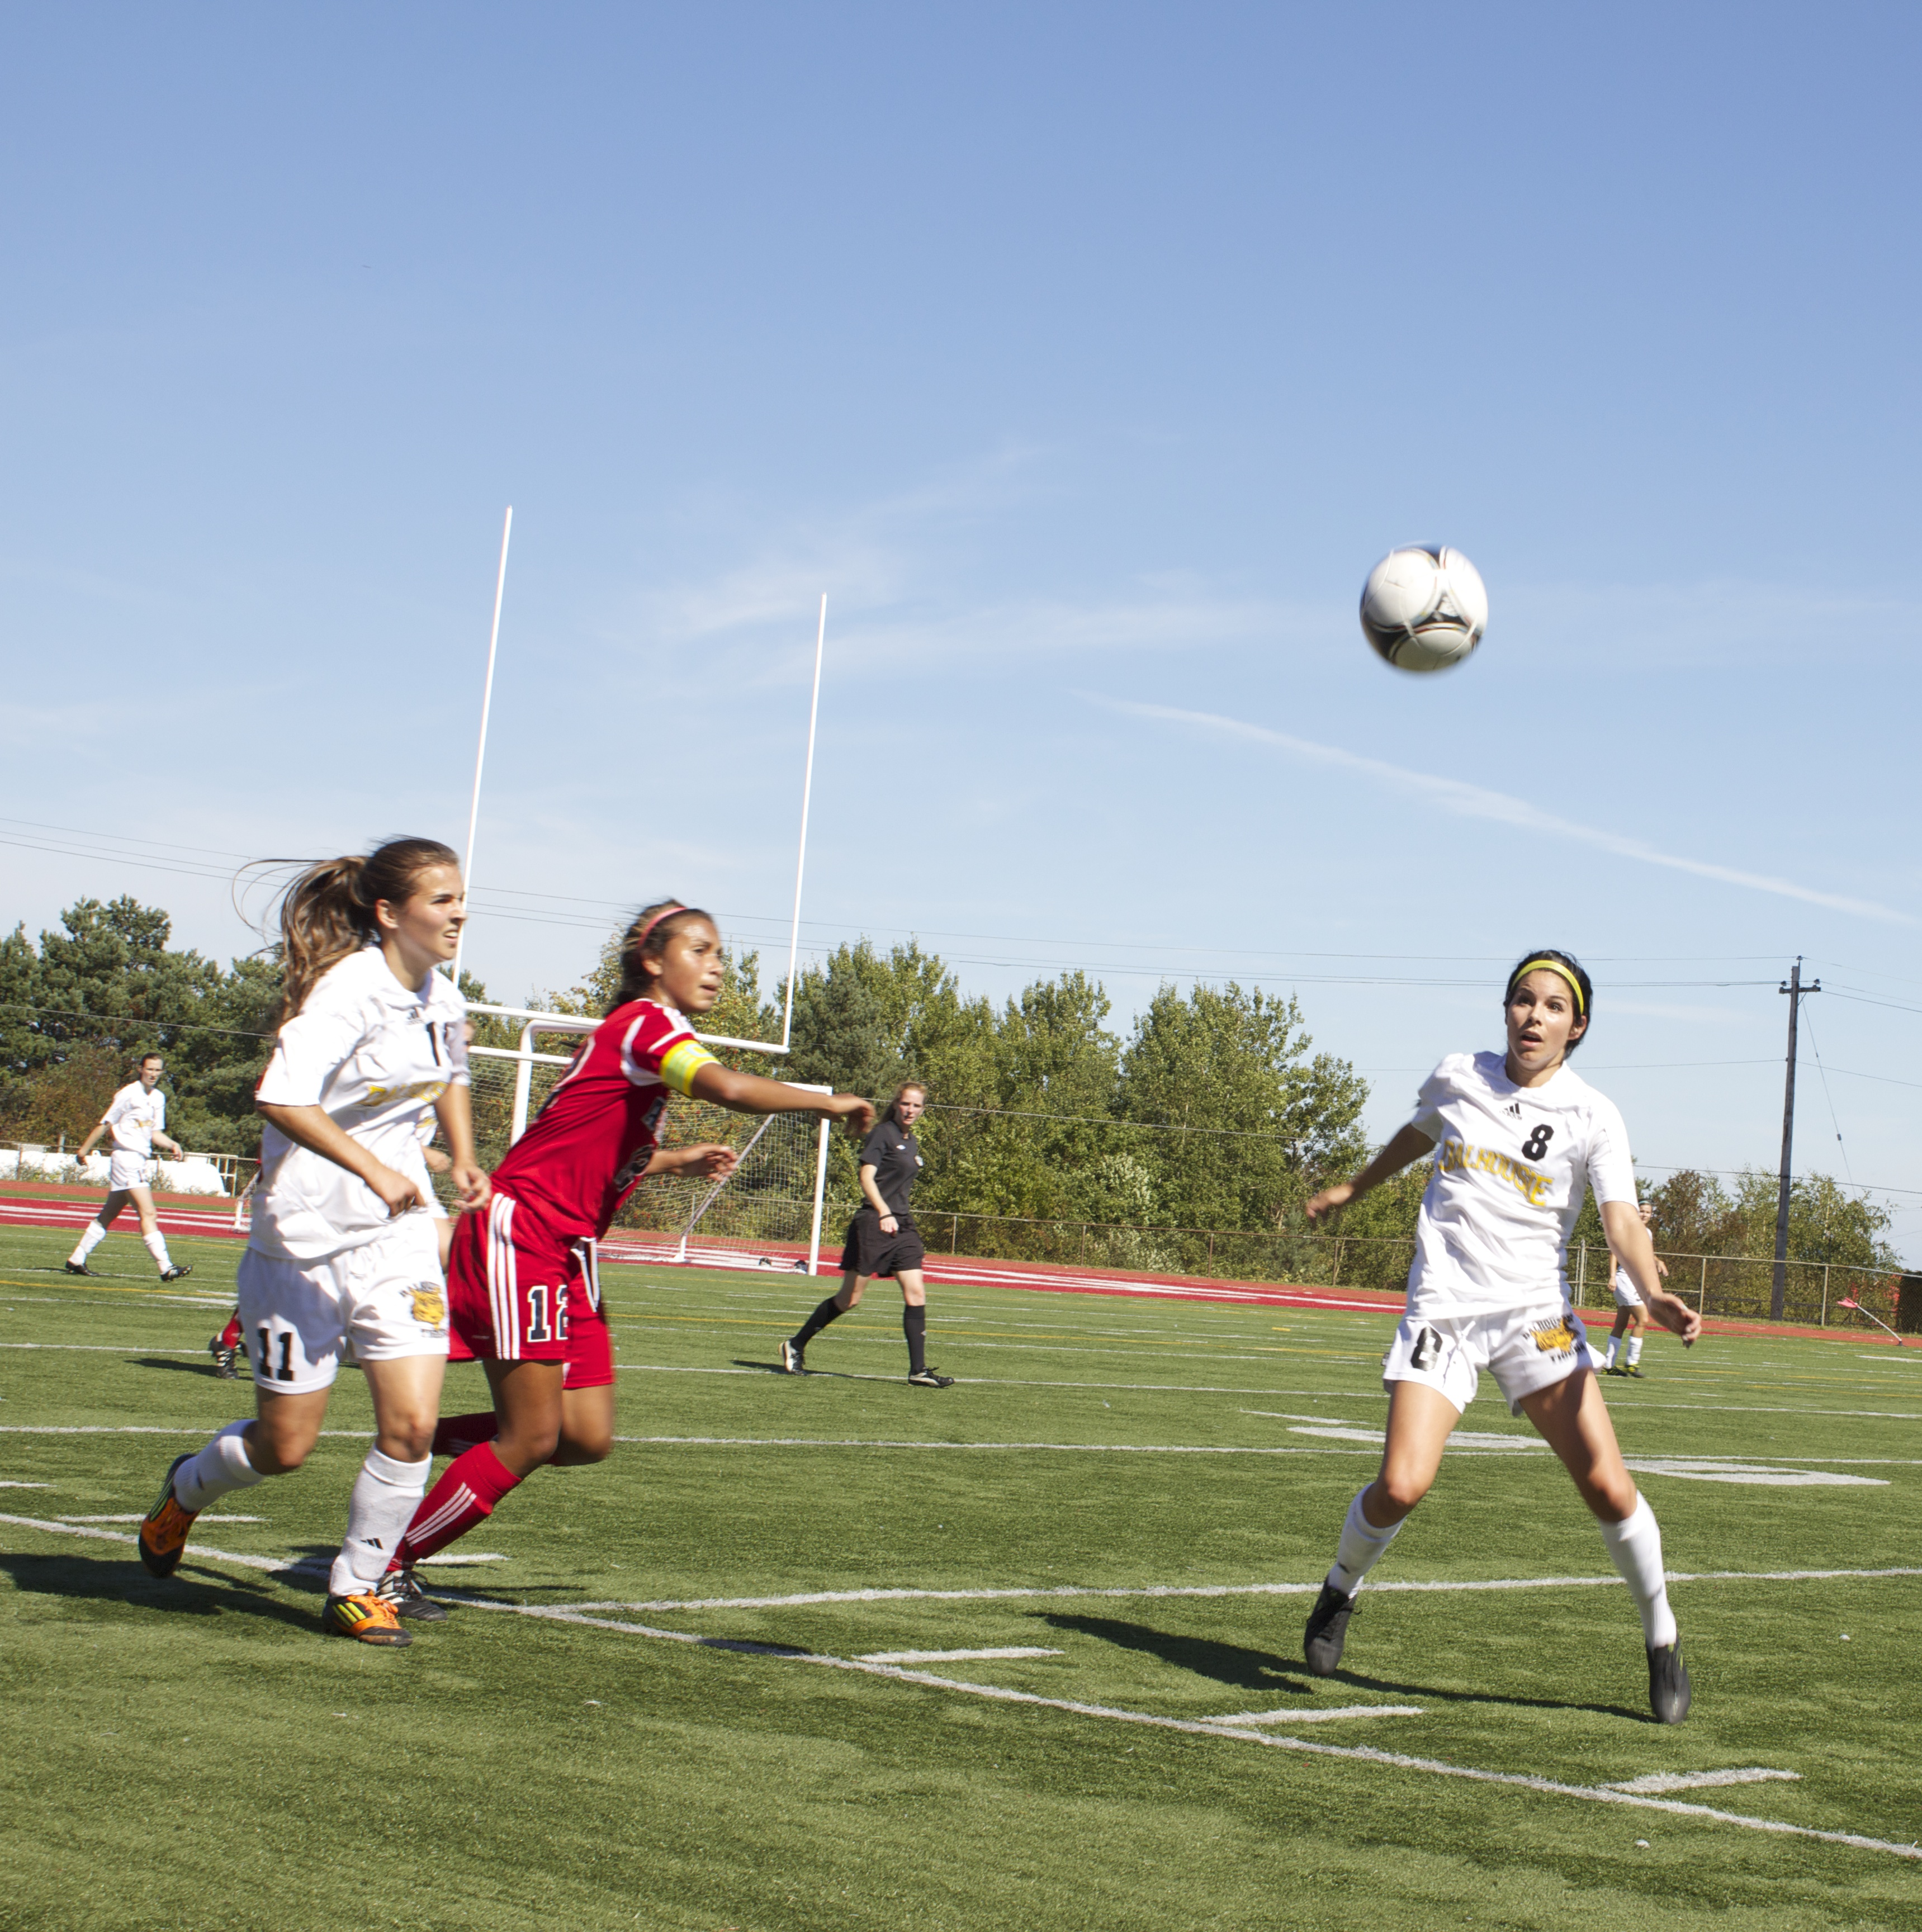 Victoria Parkinson (8) waiting to play the ball. (Samuel Perrier-Diagle photo)